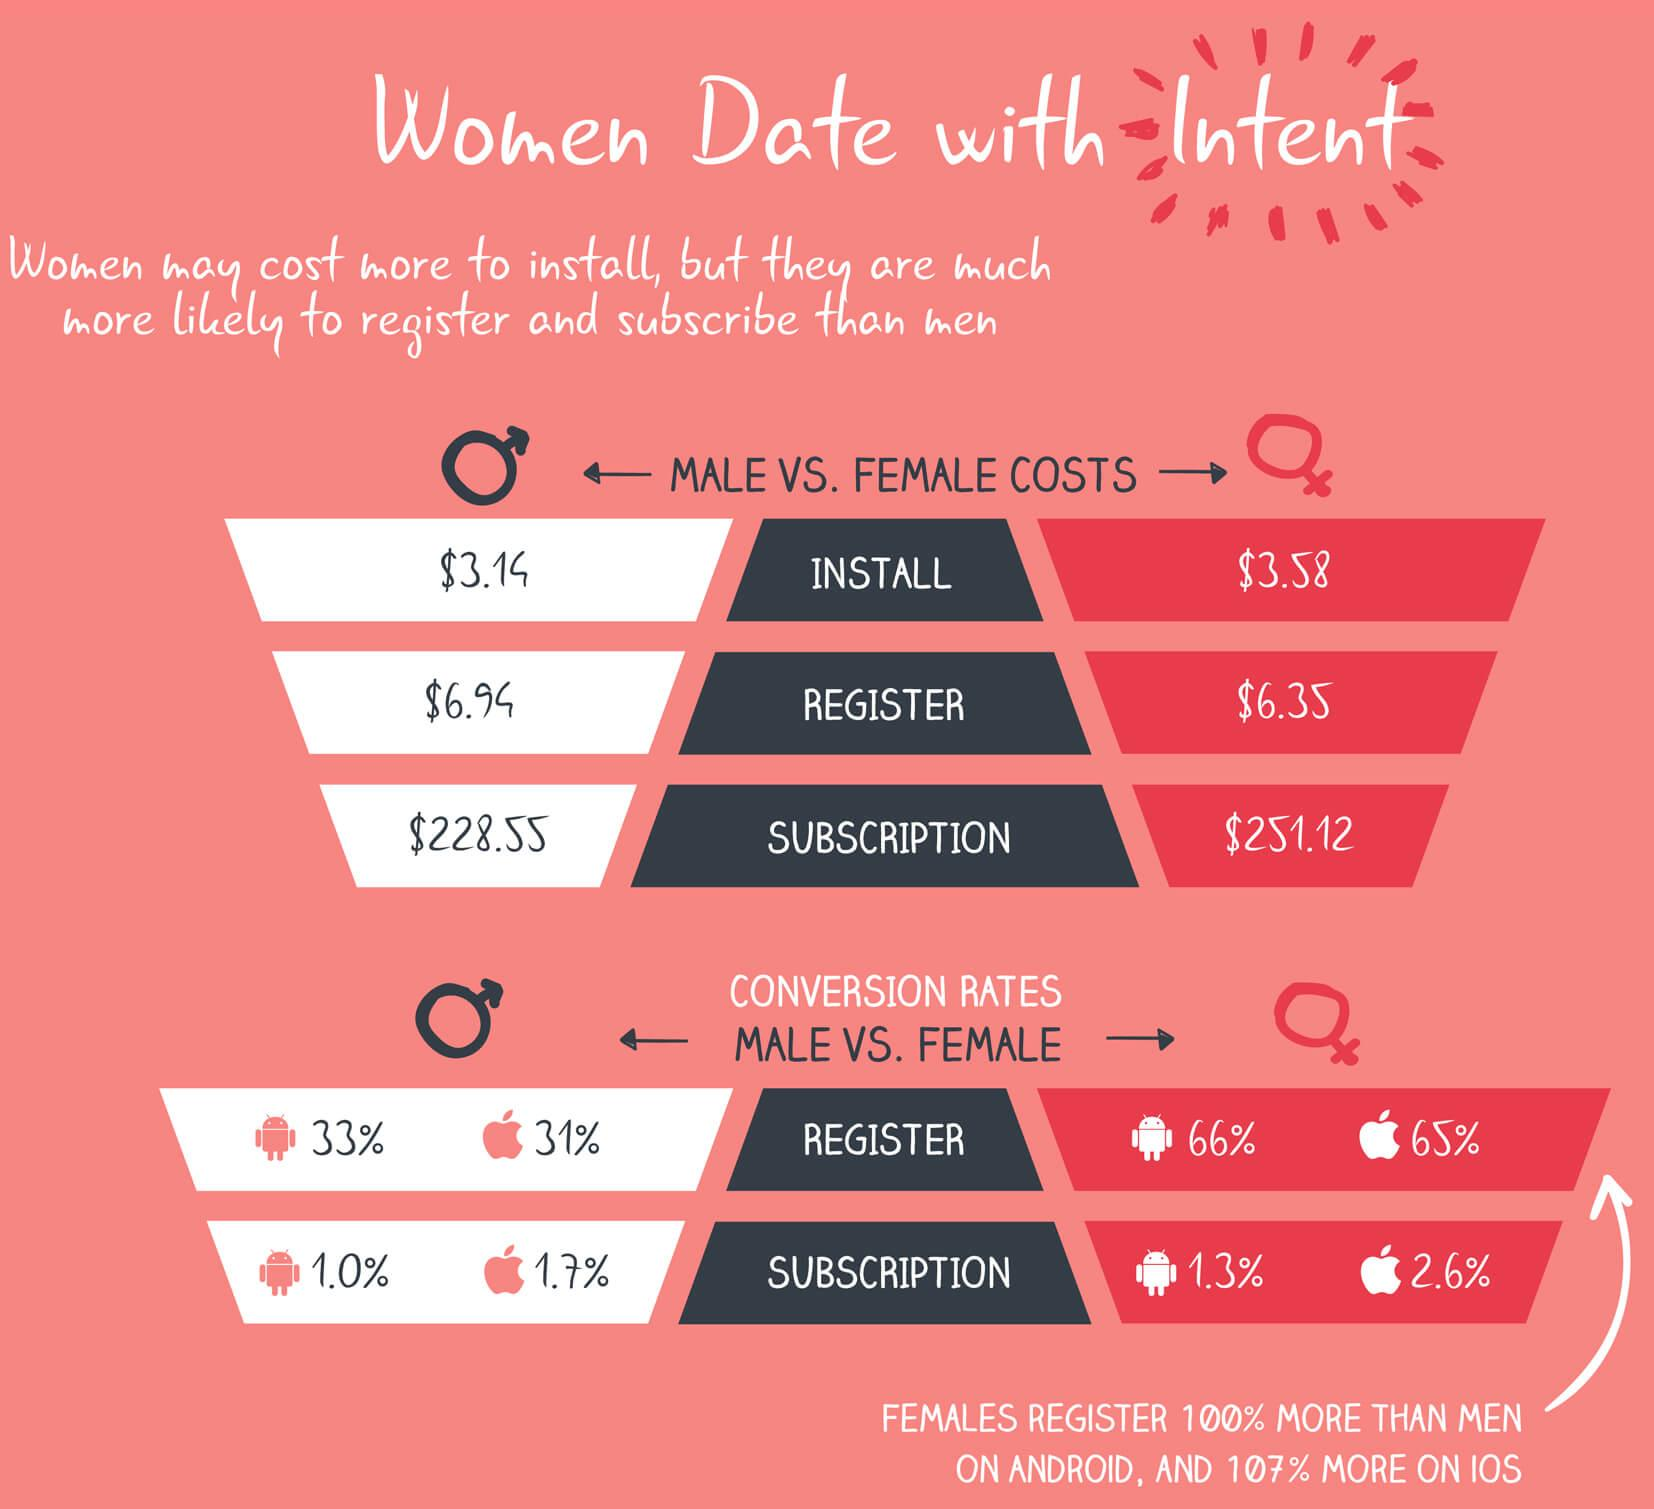 What dating apps are women using today